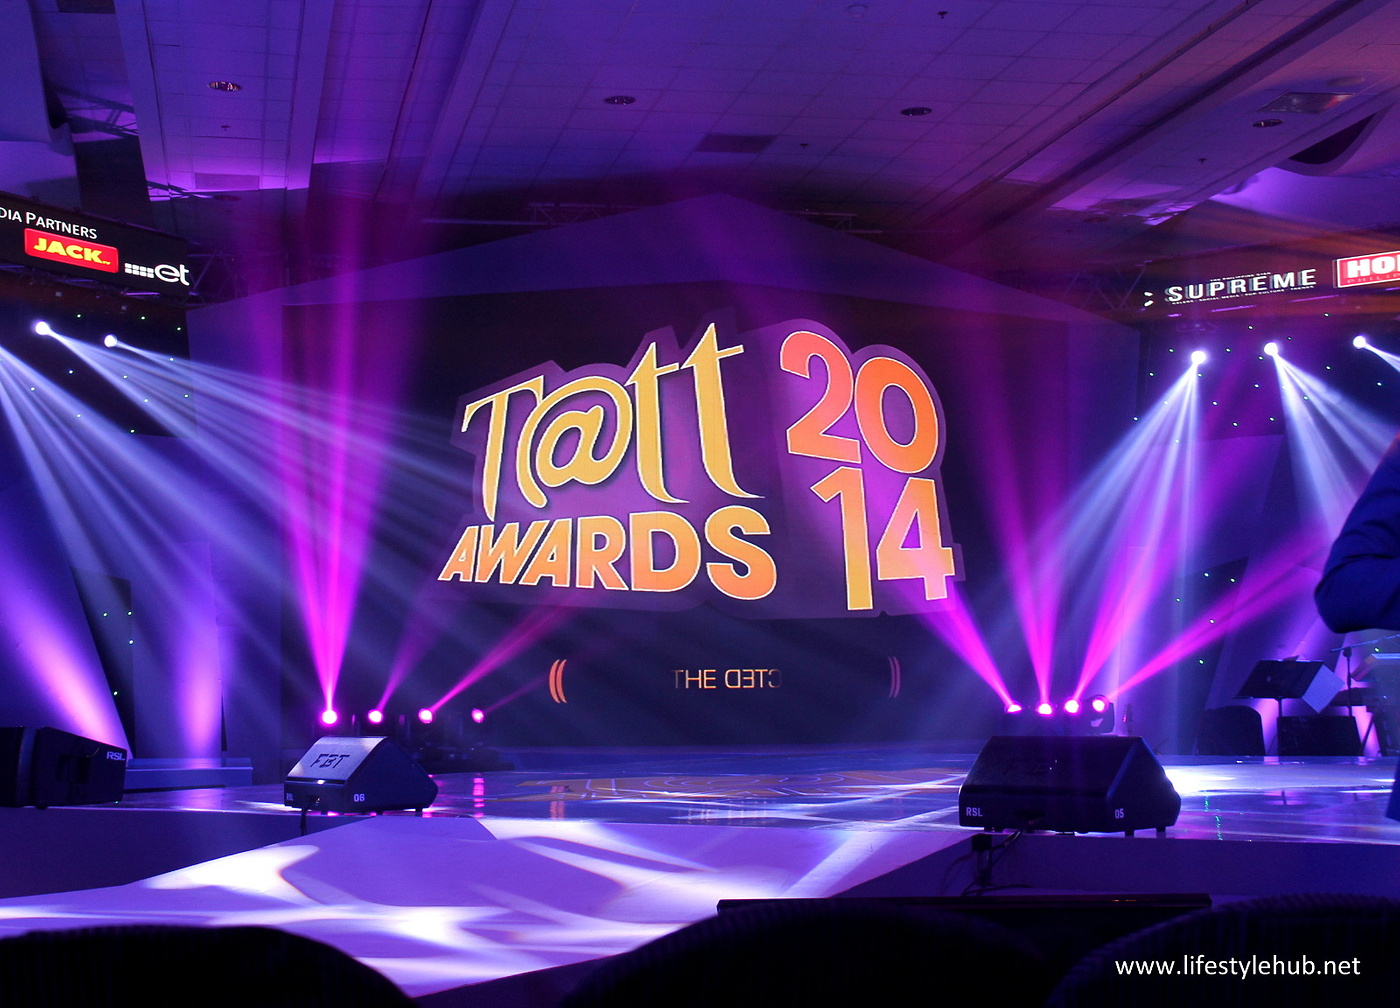 tatt awards 2K14 awards night photos